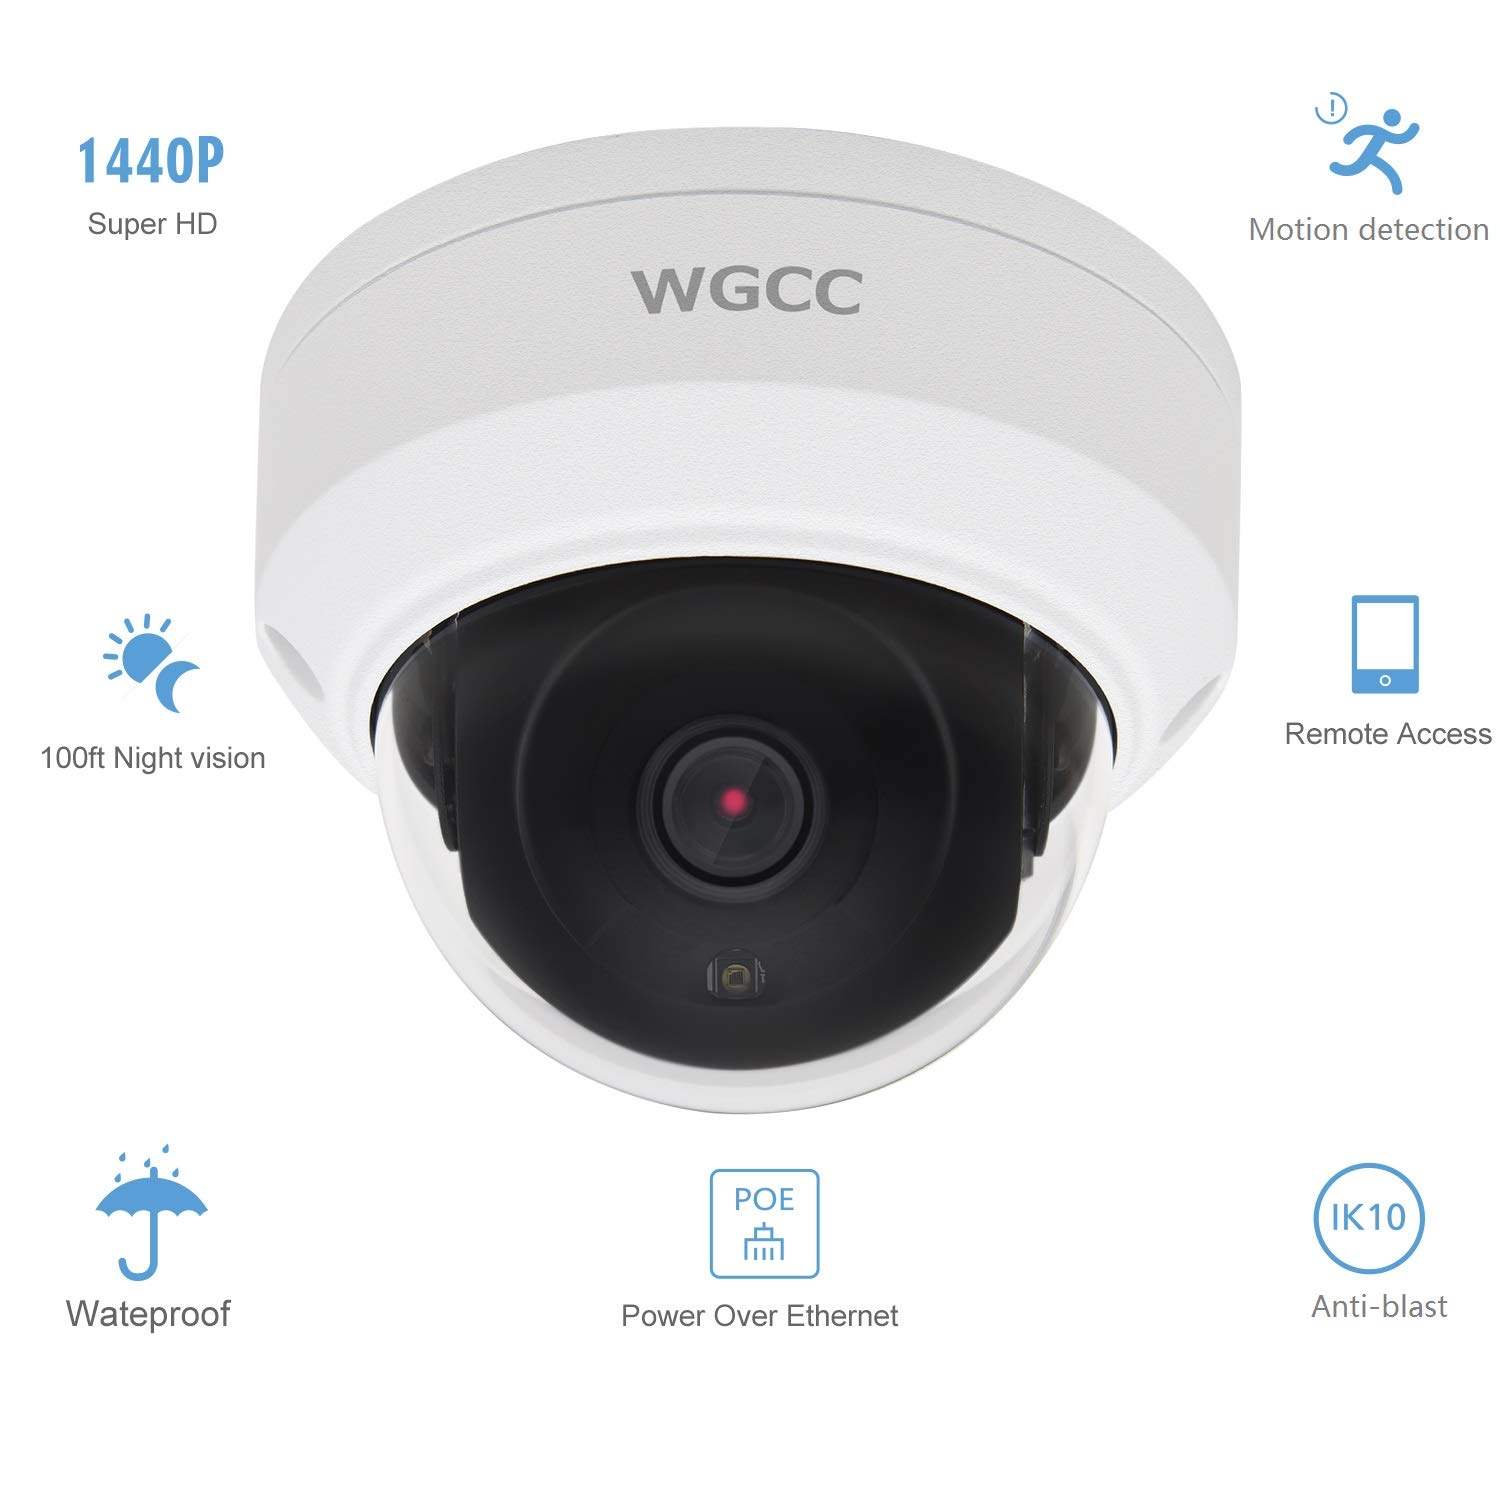 3840x2160 Supports WGCC//HIKVISION//Dahua//Amcrest POE Camera 866872 NO HDD WGCC 4-Channel 8MP Embedded Plug /& Play Network Video Recorder H.265 with 4K 4 PoE Ports Up to 8TB